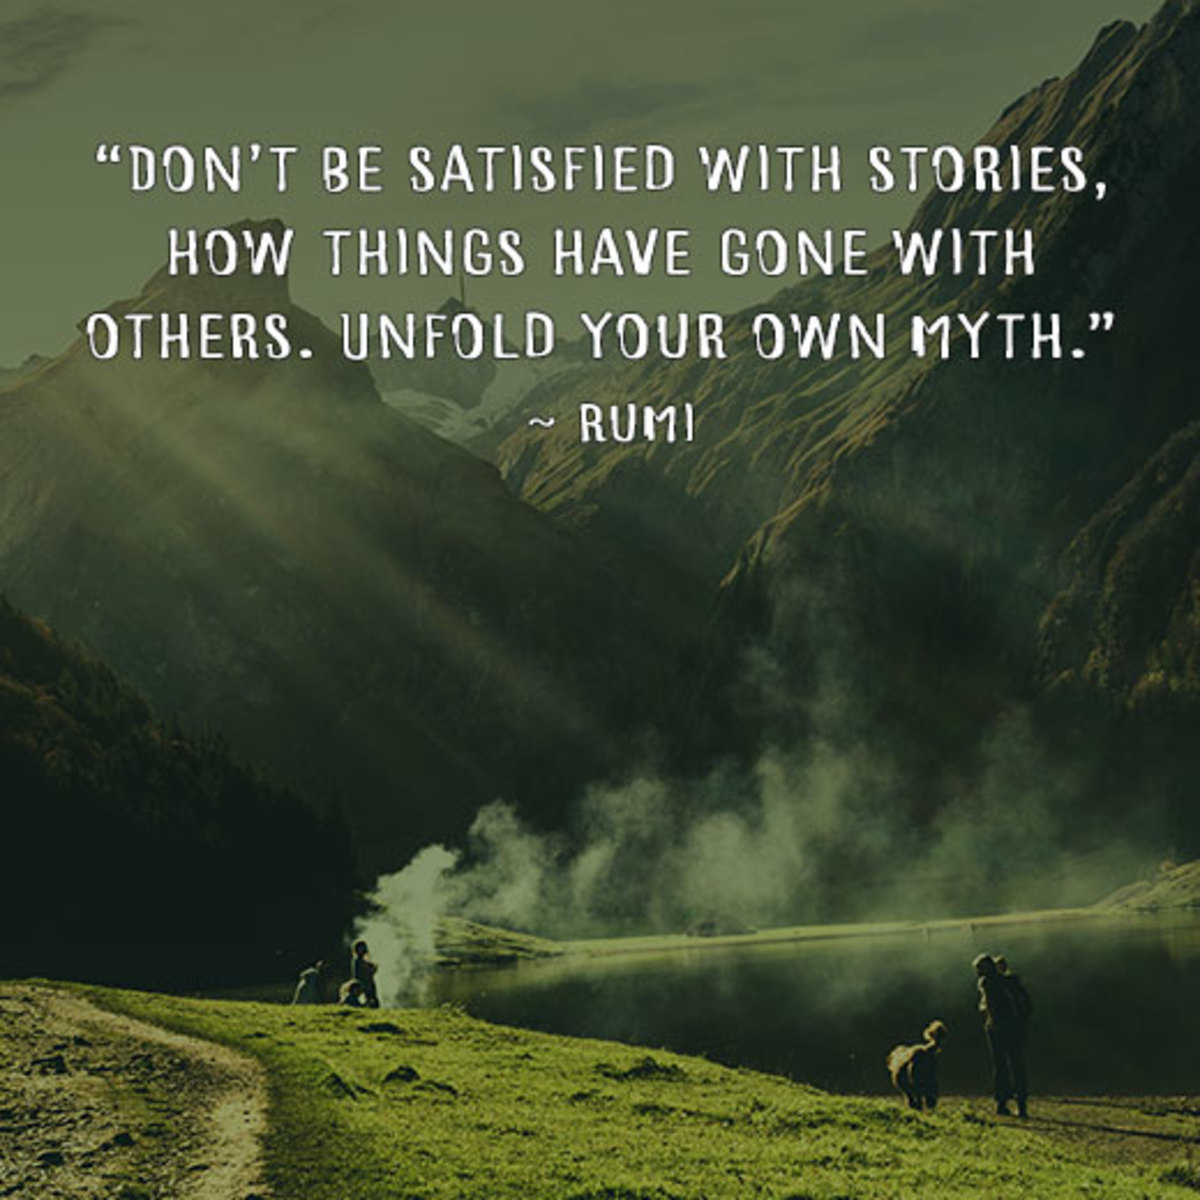 """""""Don't be satisfied with stories, how things have gone with others. Unfold your own myth."""" - Rumi"""